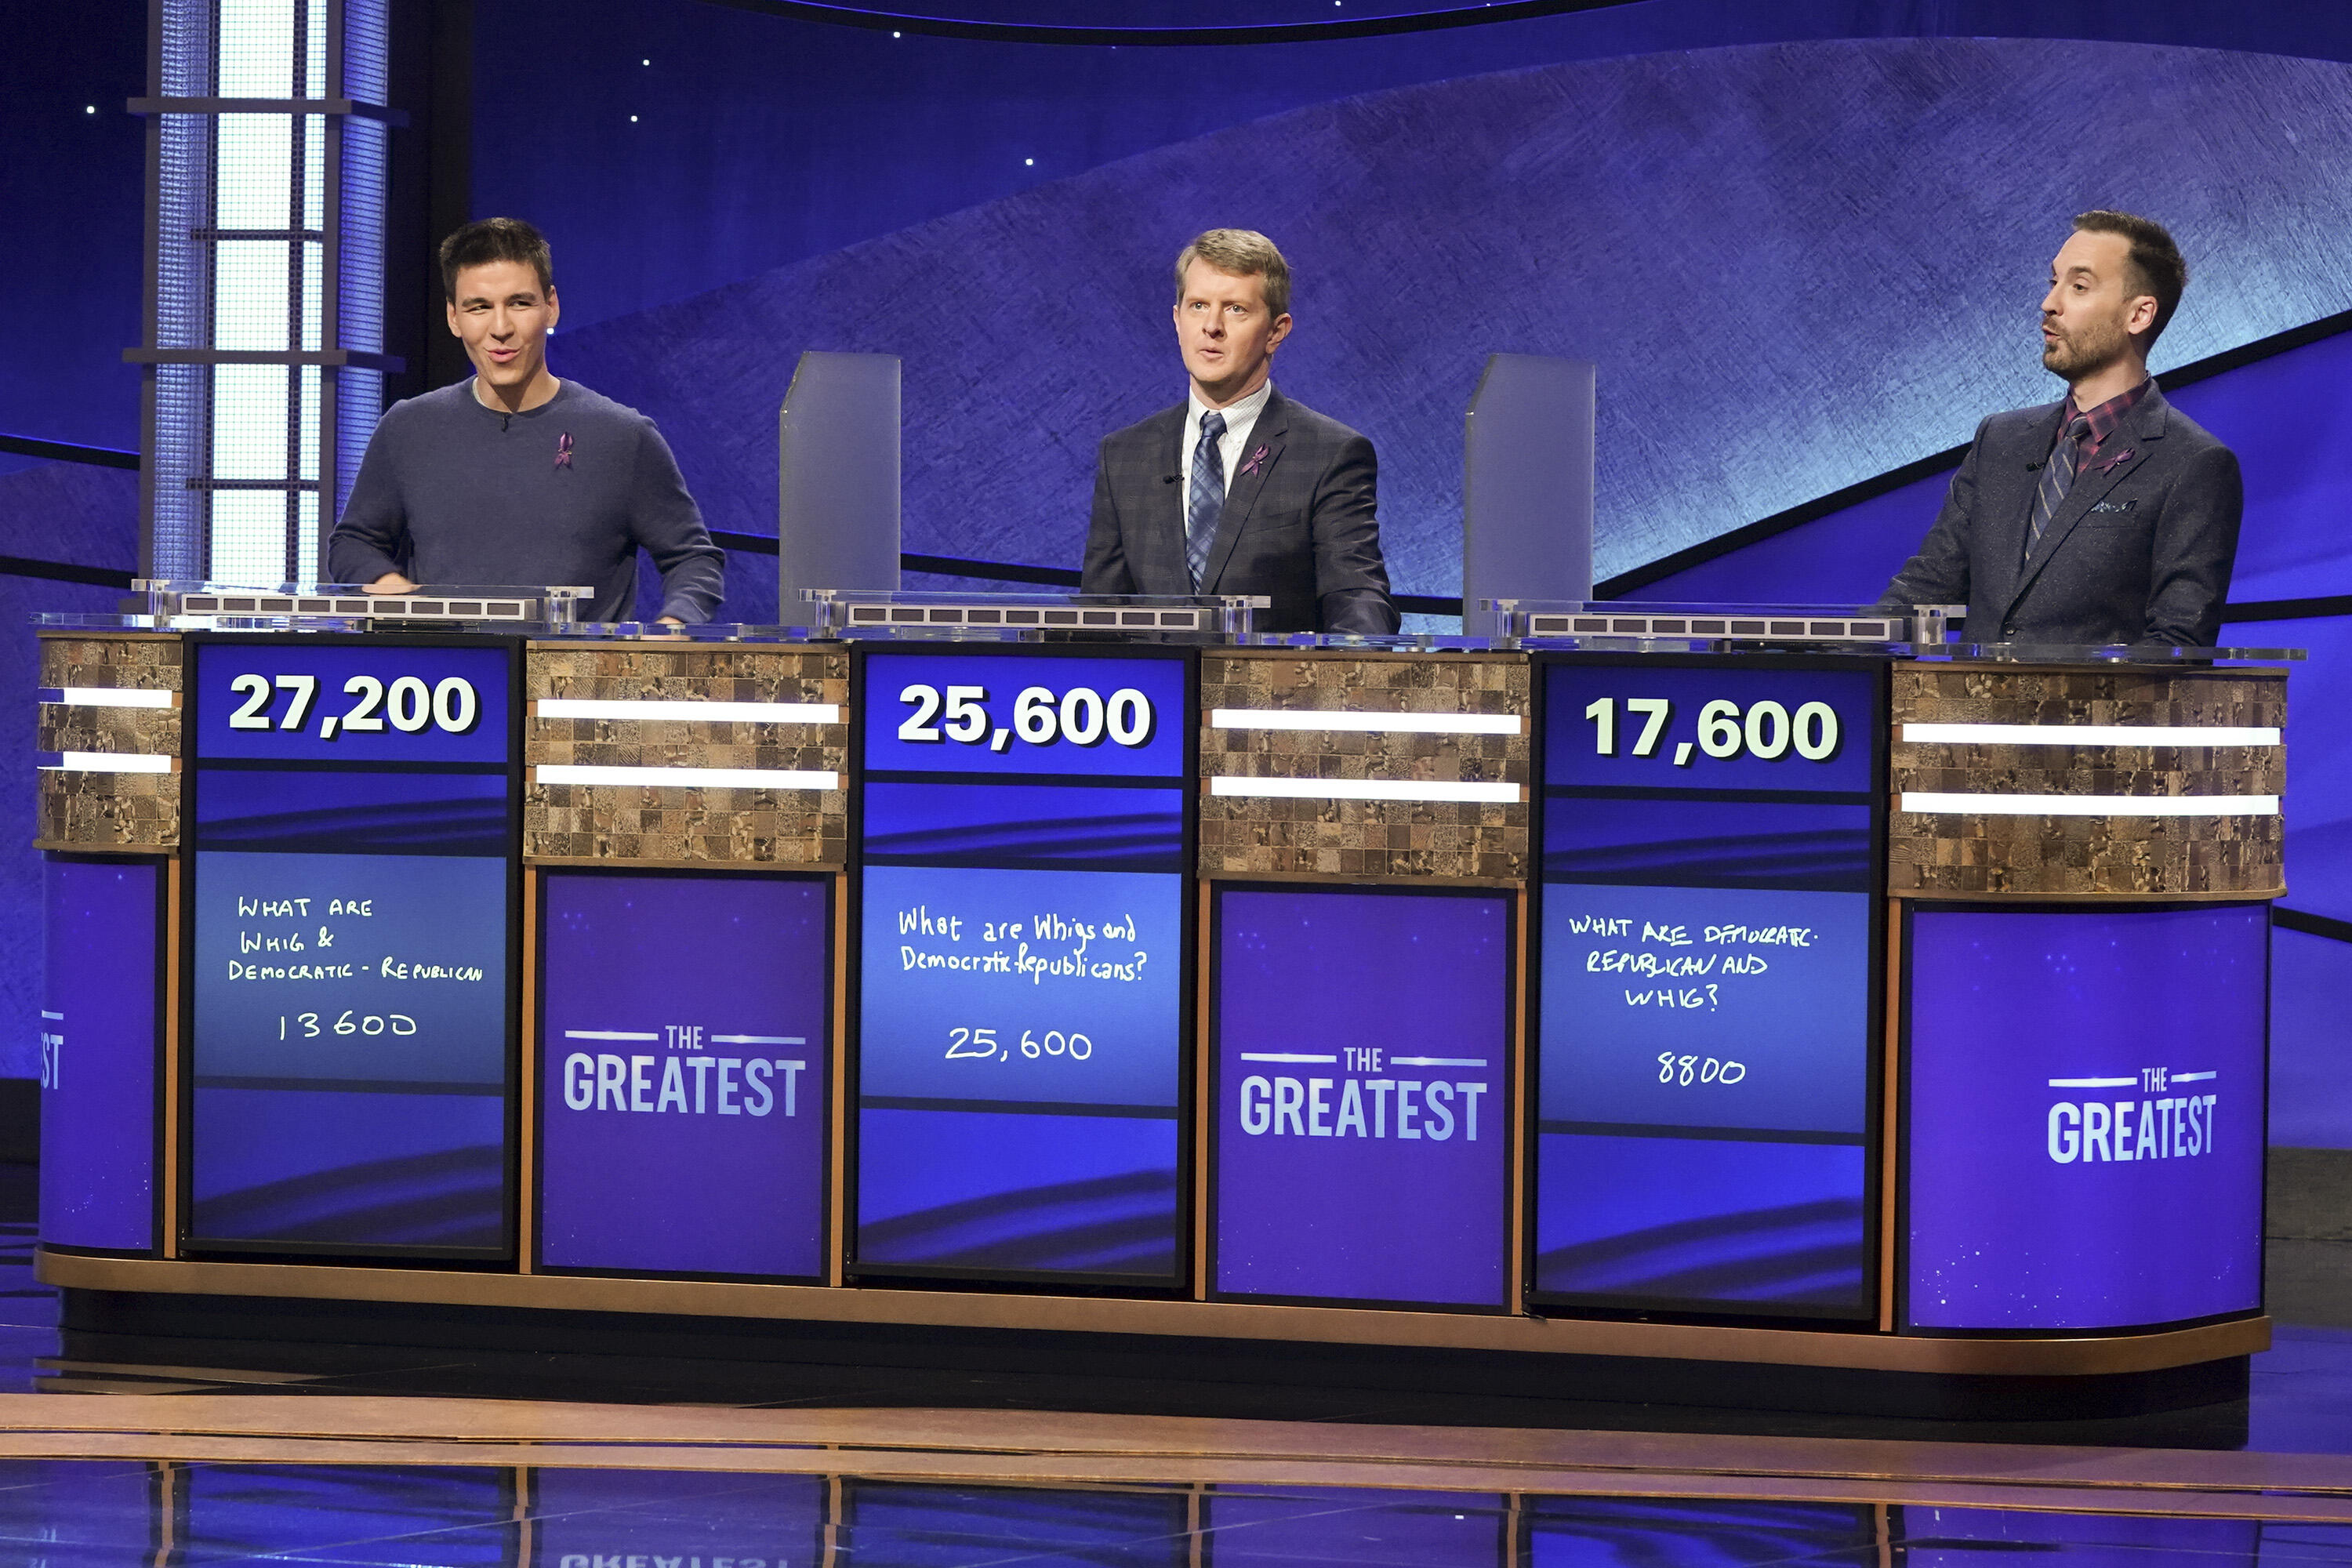 Ken Jennings on Verge Of Being 'Jeopardy!'s' Greatest Of All-Time